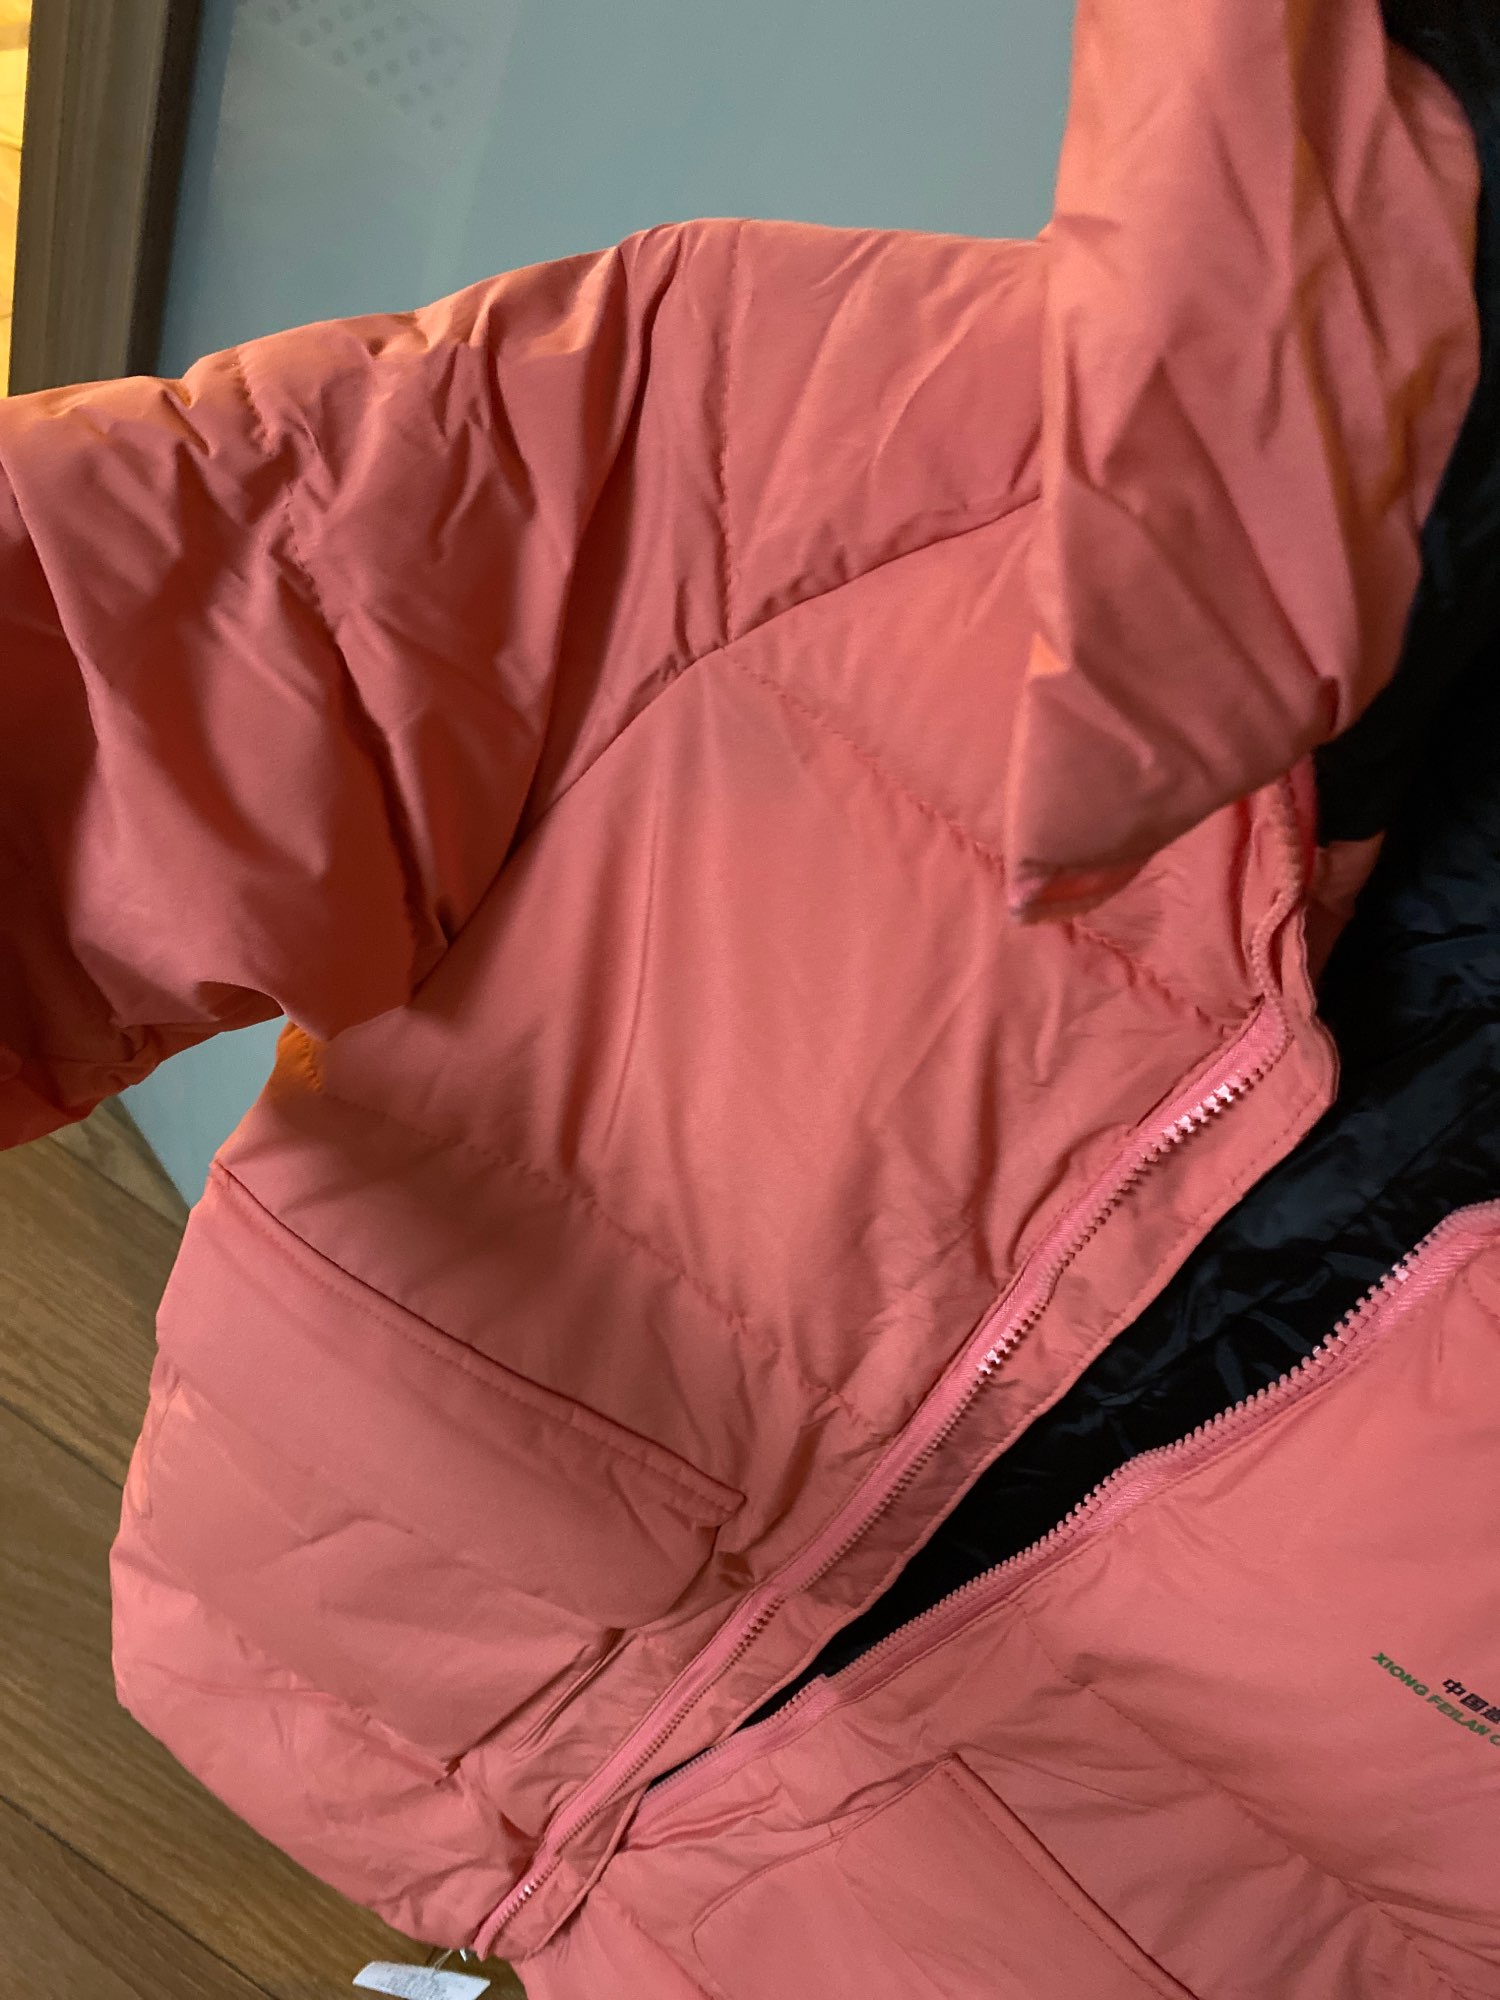 The jacket is very good, for a girl 6, 6 years old, the sleeves are long, but since there is an elastic band at the bottom, it looks good. High collar. The coat is below the knee, we will wear it for the next year for sure. I think you can wear it up to -5. But it's hard to say. I took it for a cold autumn. The color is slightly different, half tone, not as bright